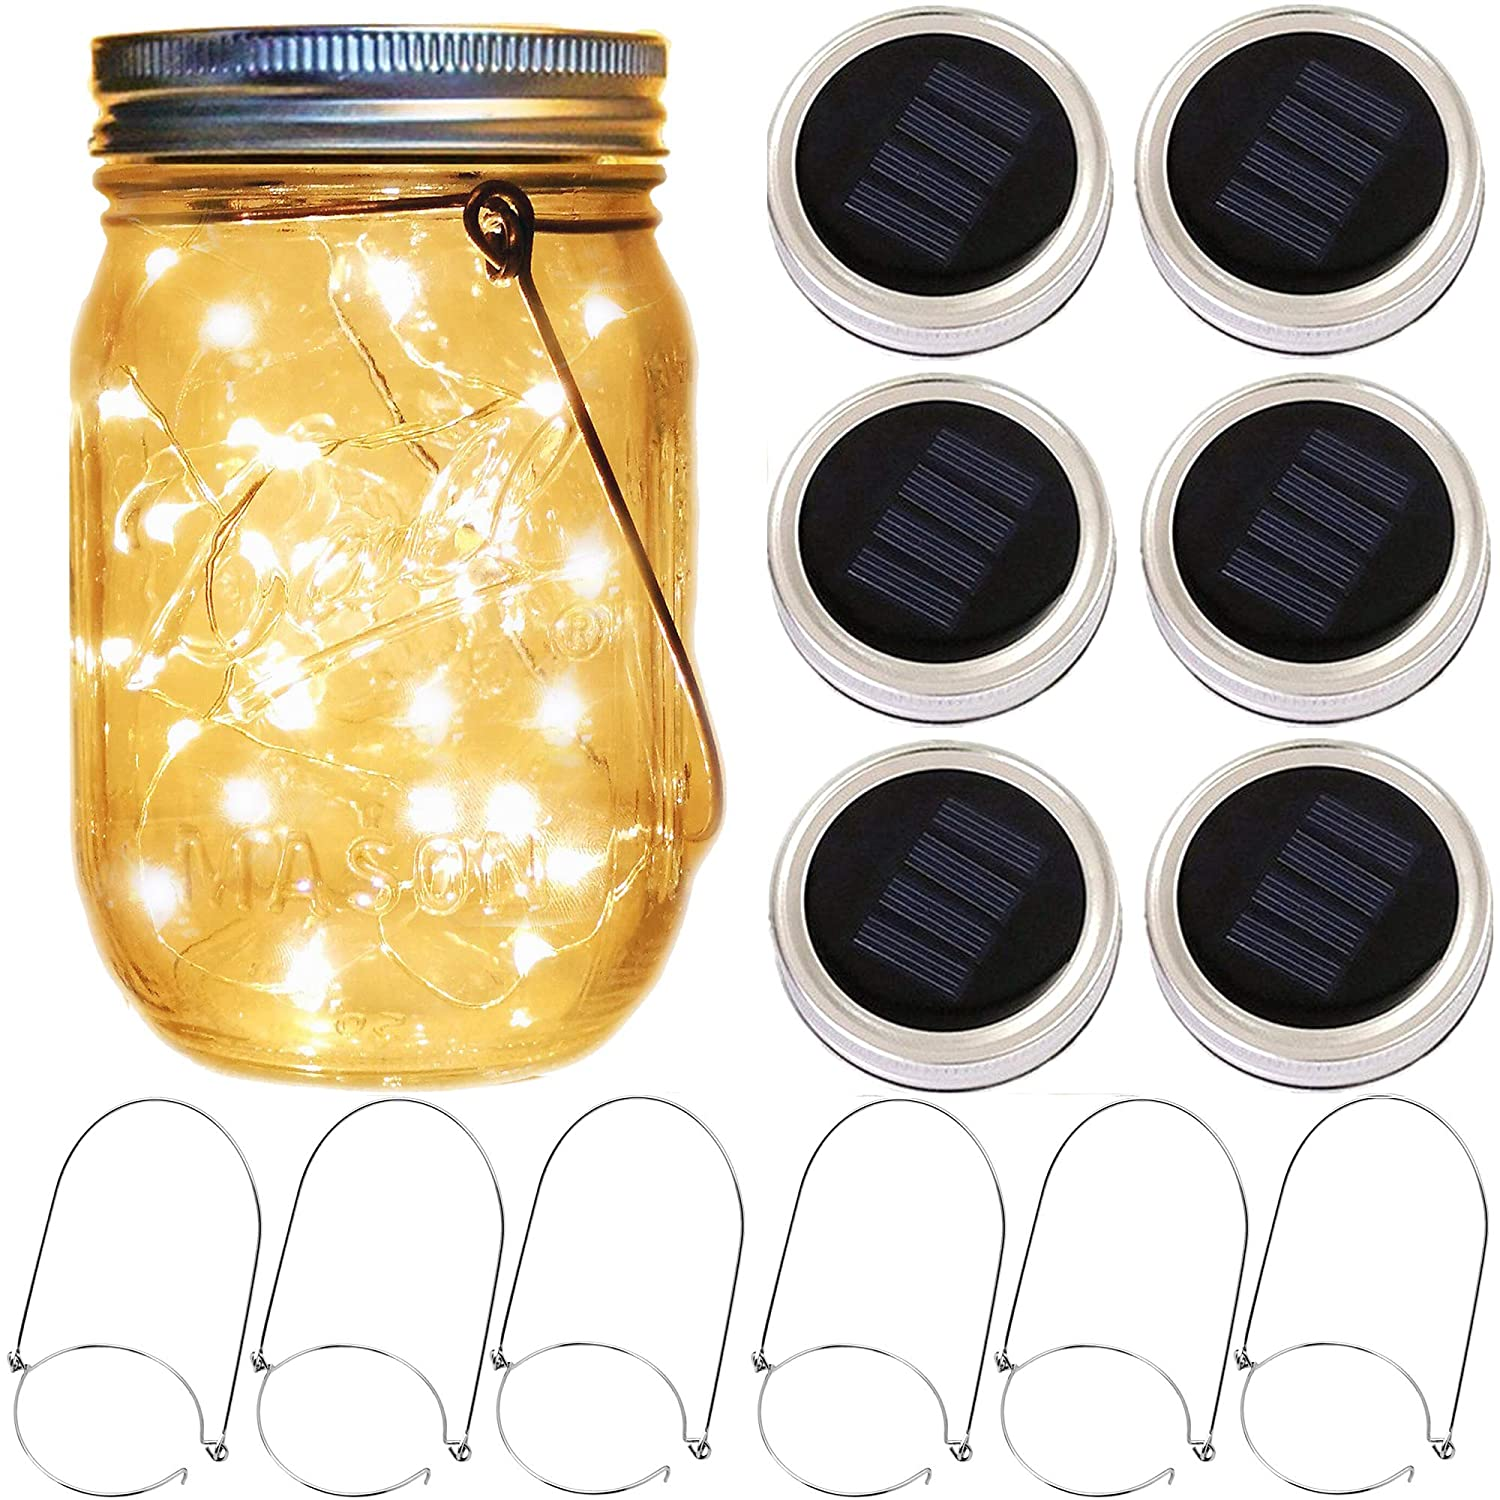 Solar Mason Jar Lantern Lights,6 Pack 20 Led Fairy Solar Firefly Jar lids Lights,6 Hangers 16 Feet Hemp Rope Included (No Jar),Outdoor Mason Jar Patio Garden Wedding Table Decor Solar Lanterns Light